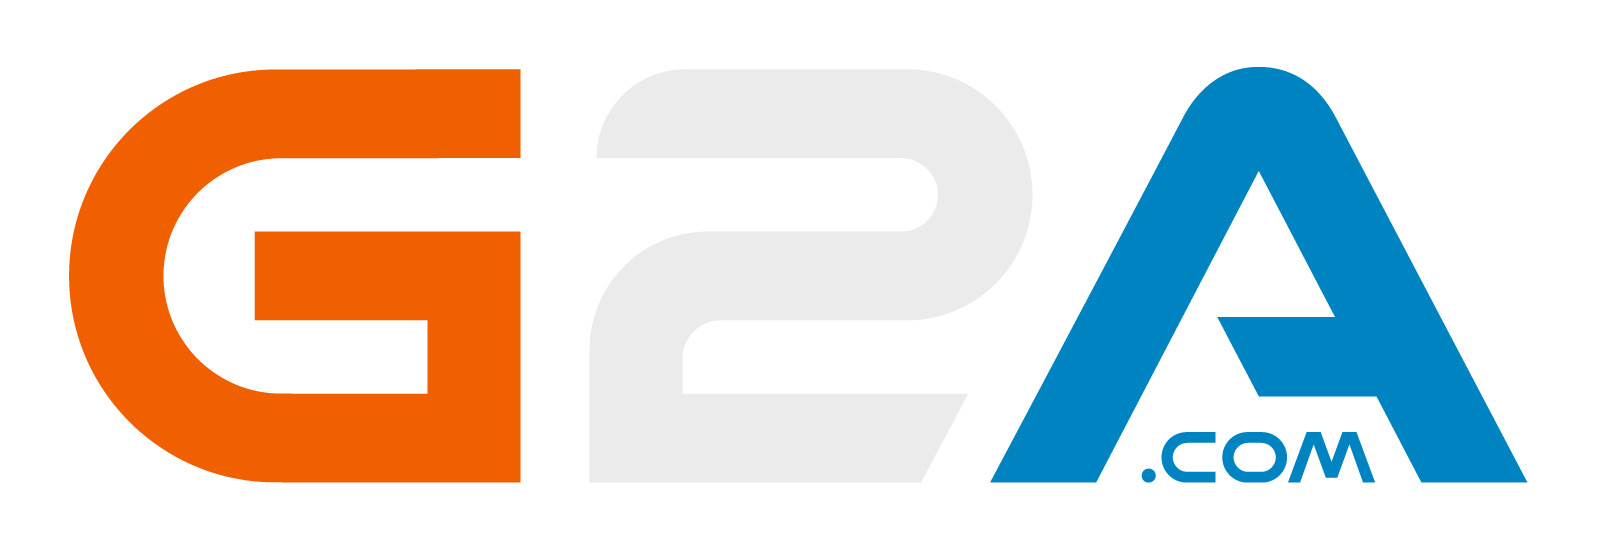 G2A users have to pay fee for being inactive | Alienware Arena